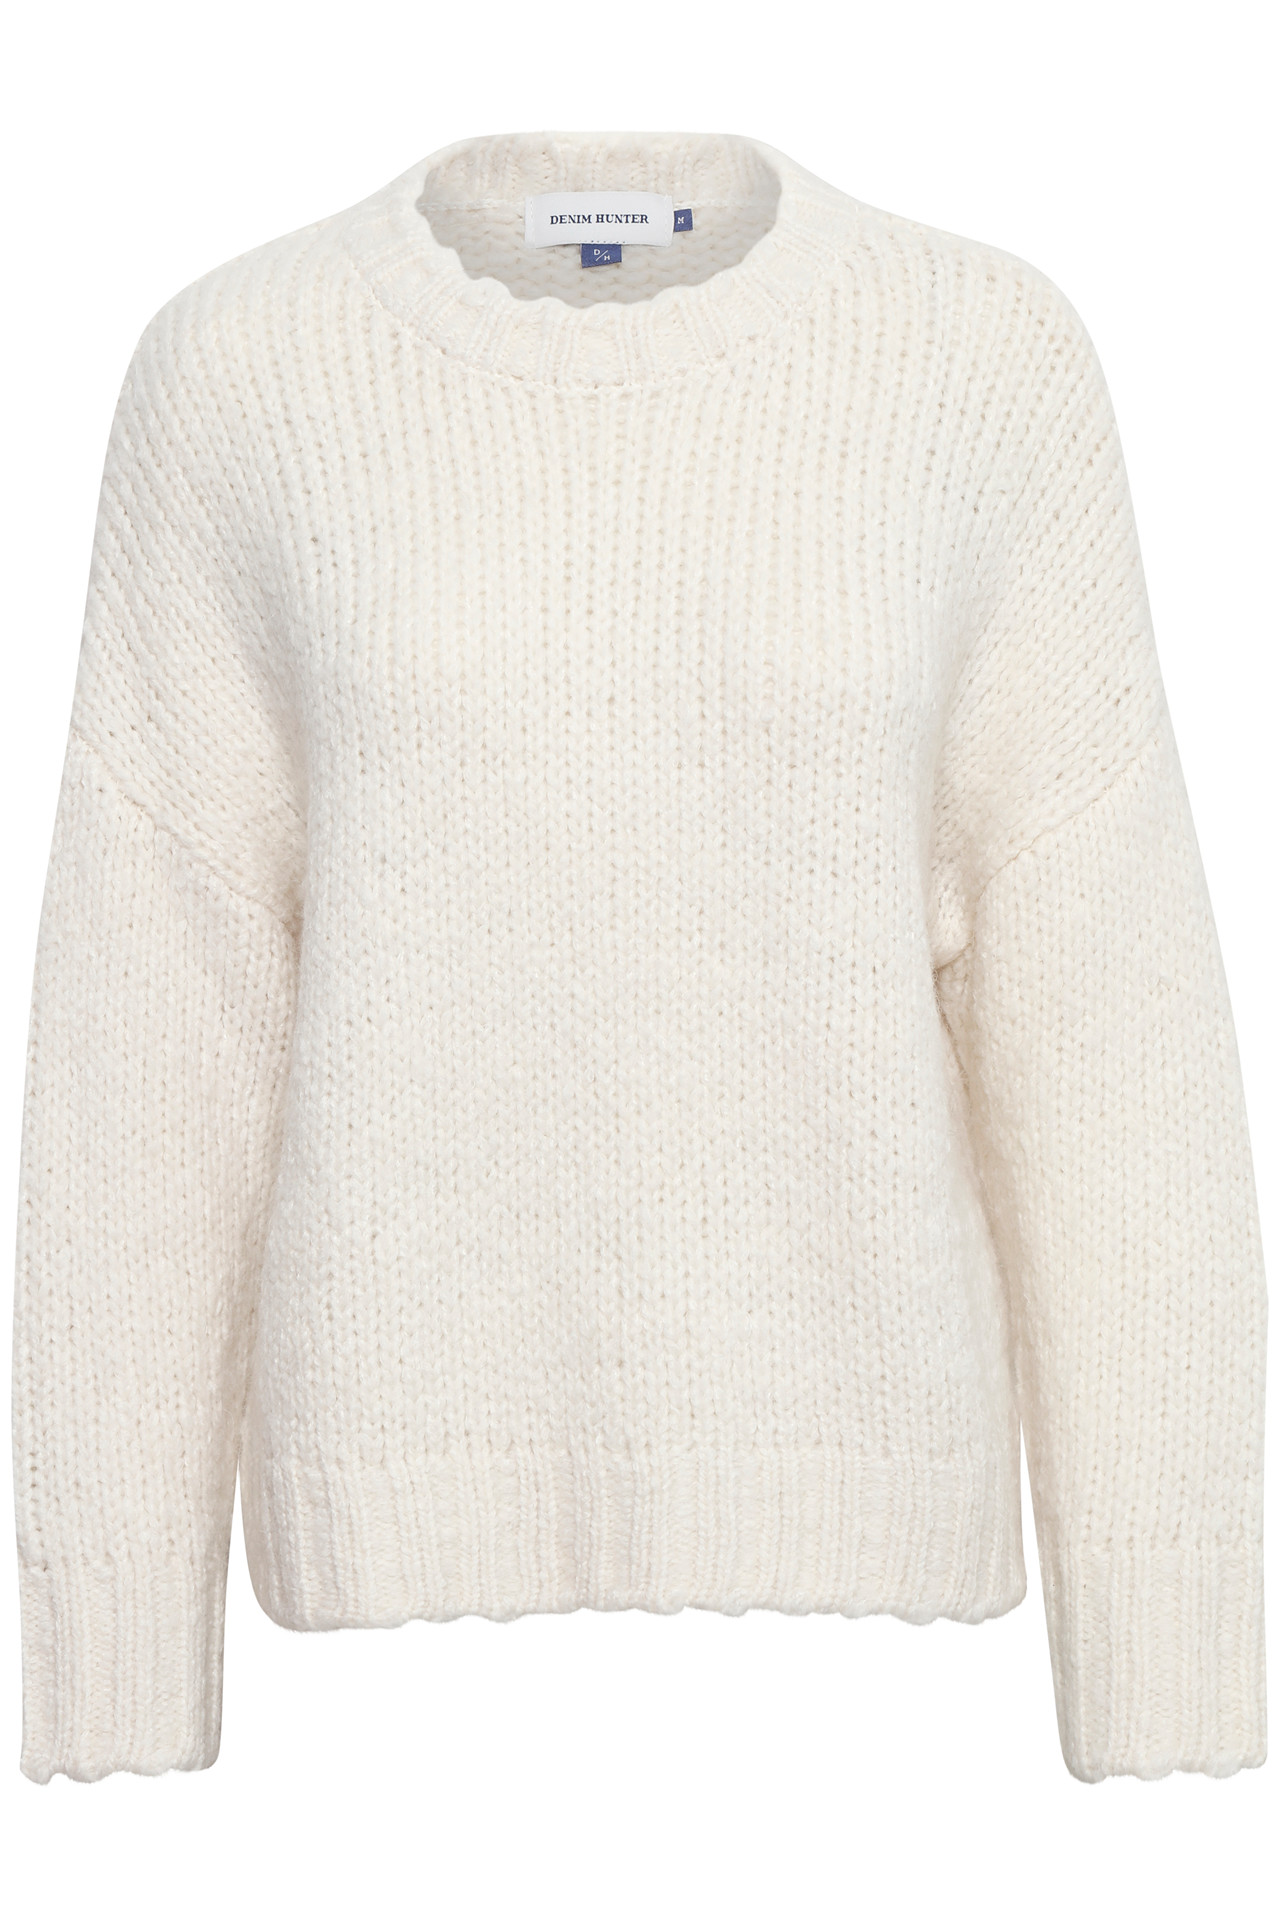 Image of   Denim Hunter DHWILLOW KNIT PULLOVER W 10702466 (Whisper White 36024, XS)